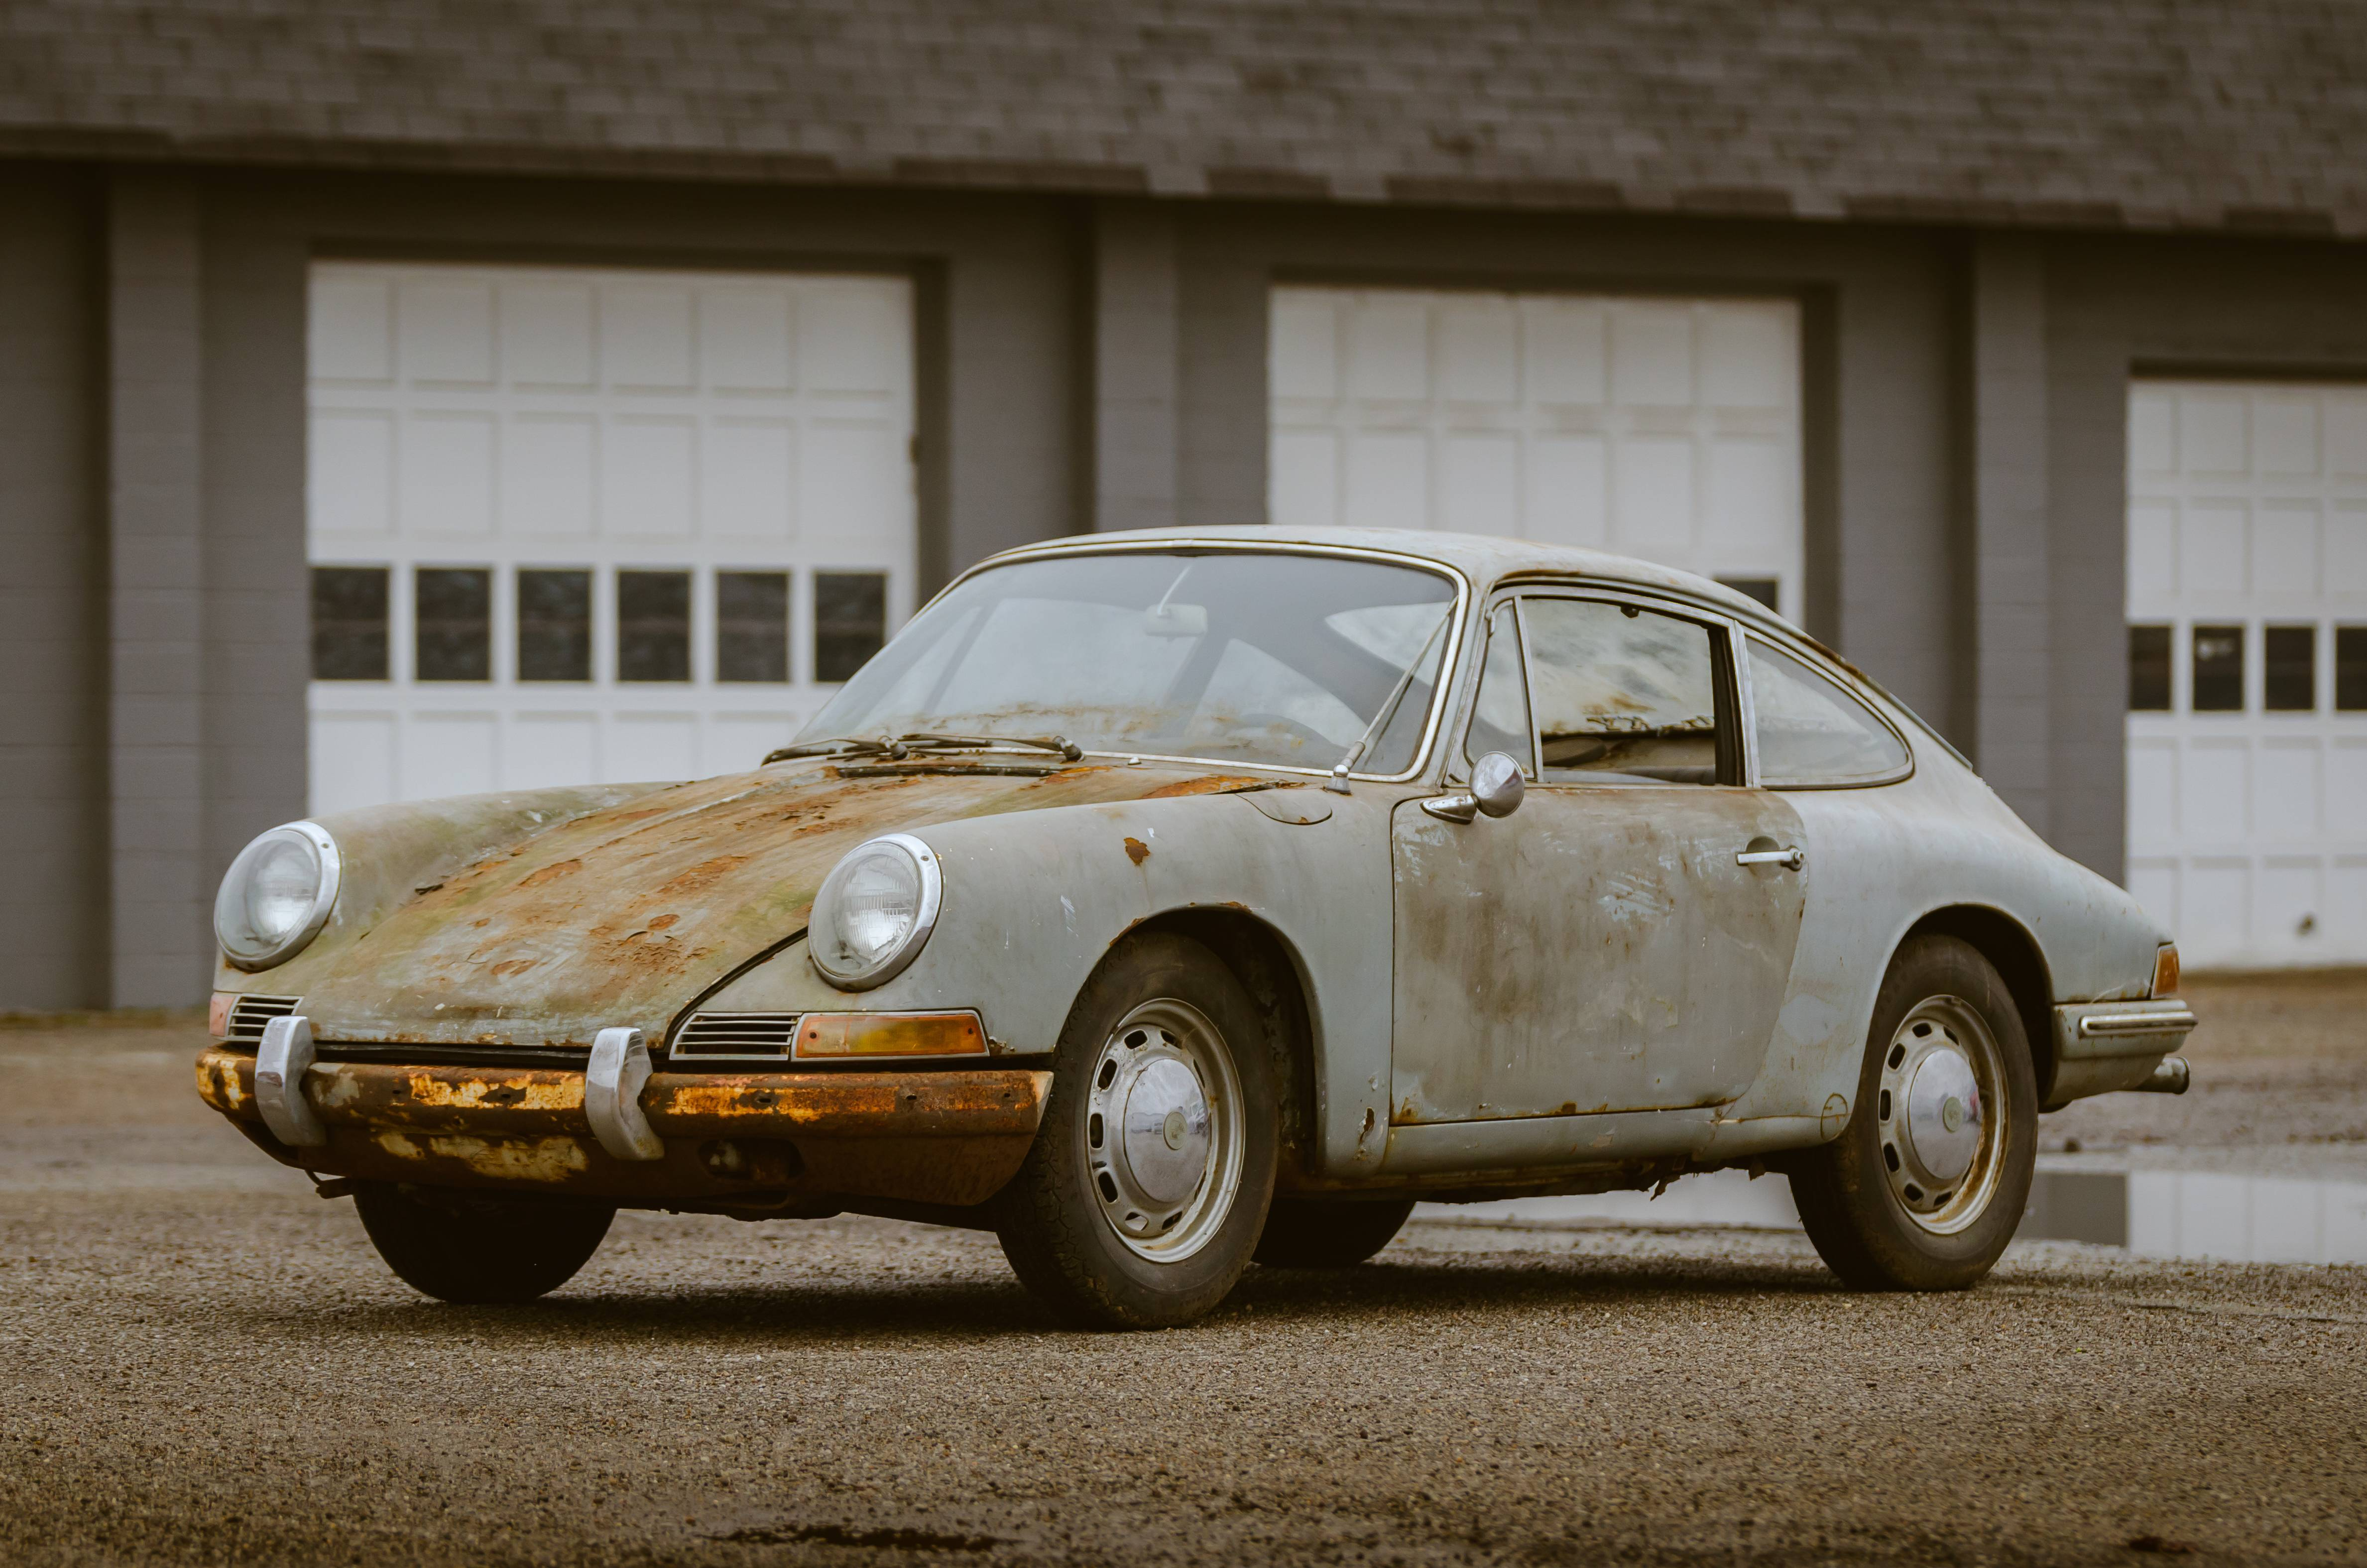 The Top 15 Best Car Restoration Projects